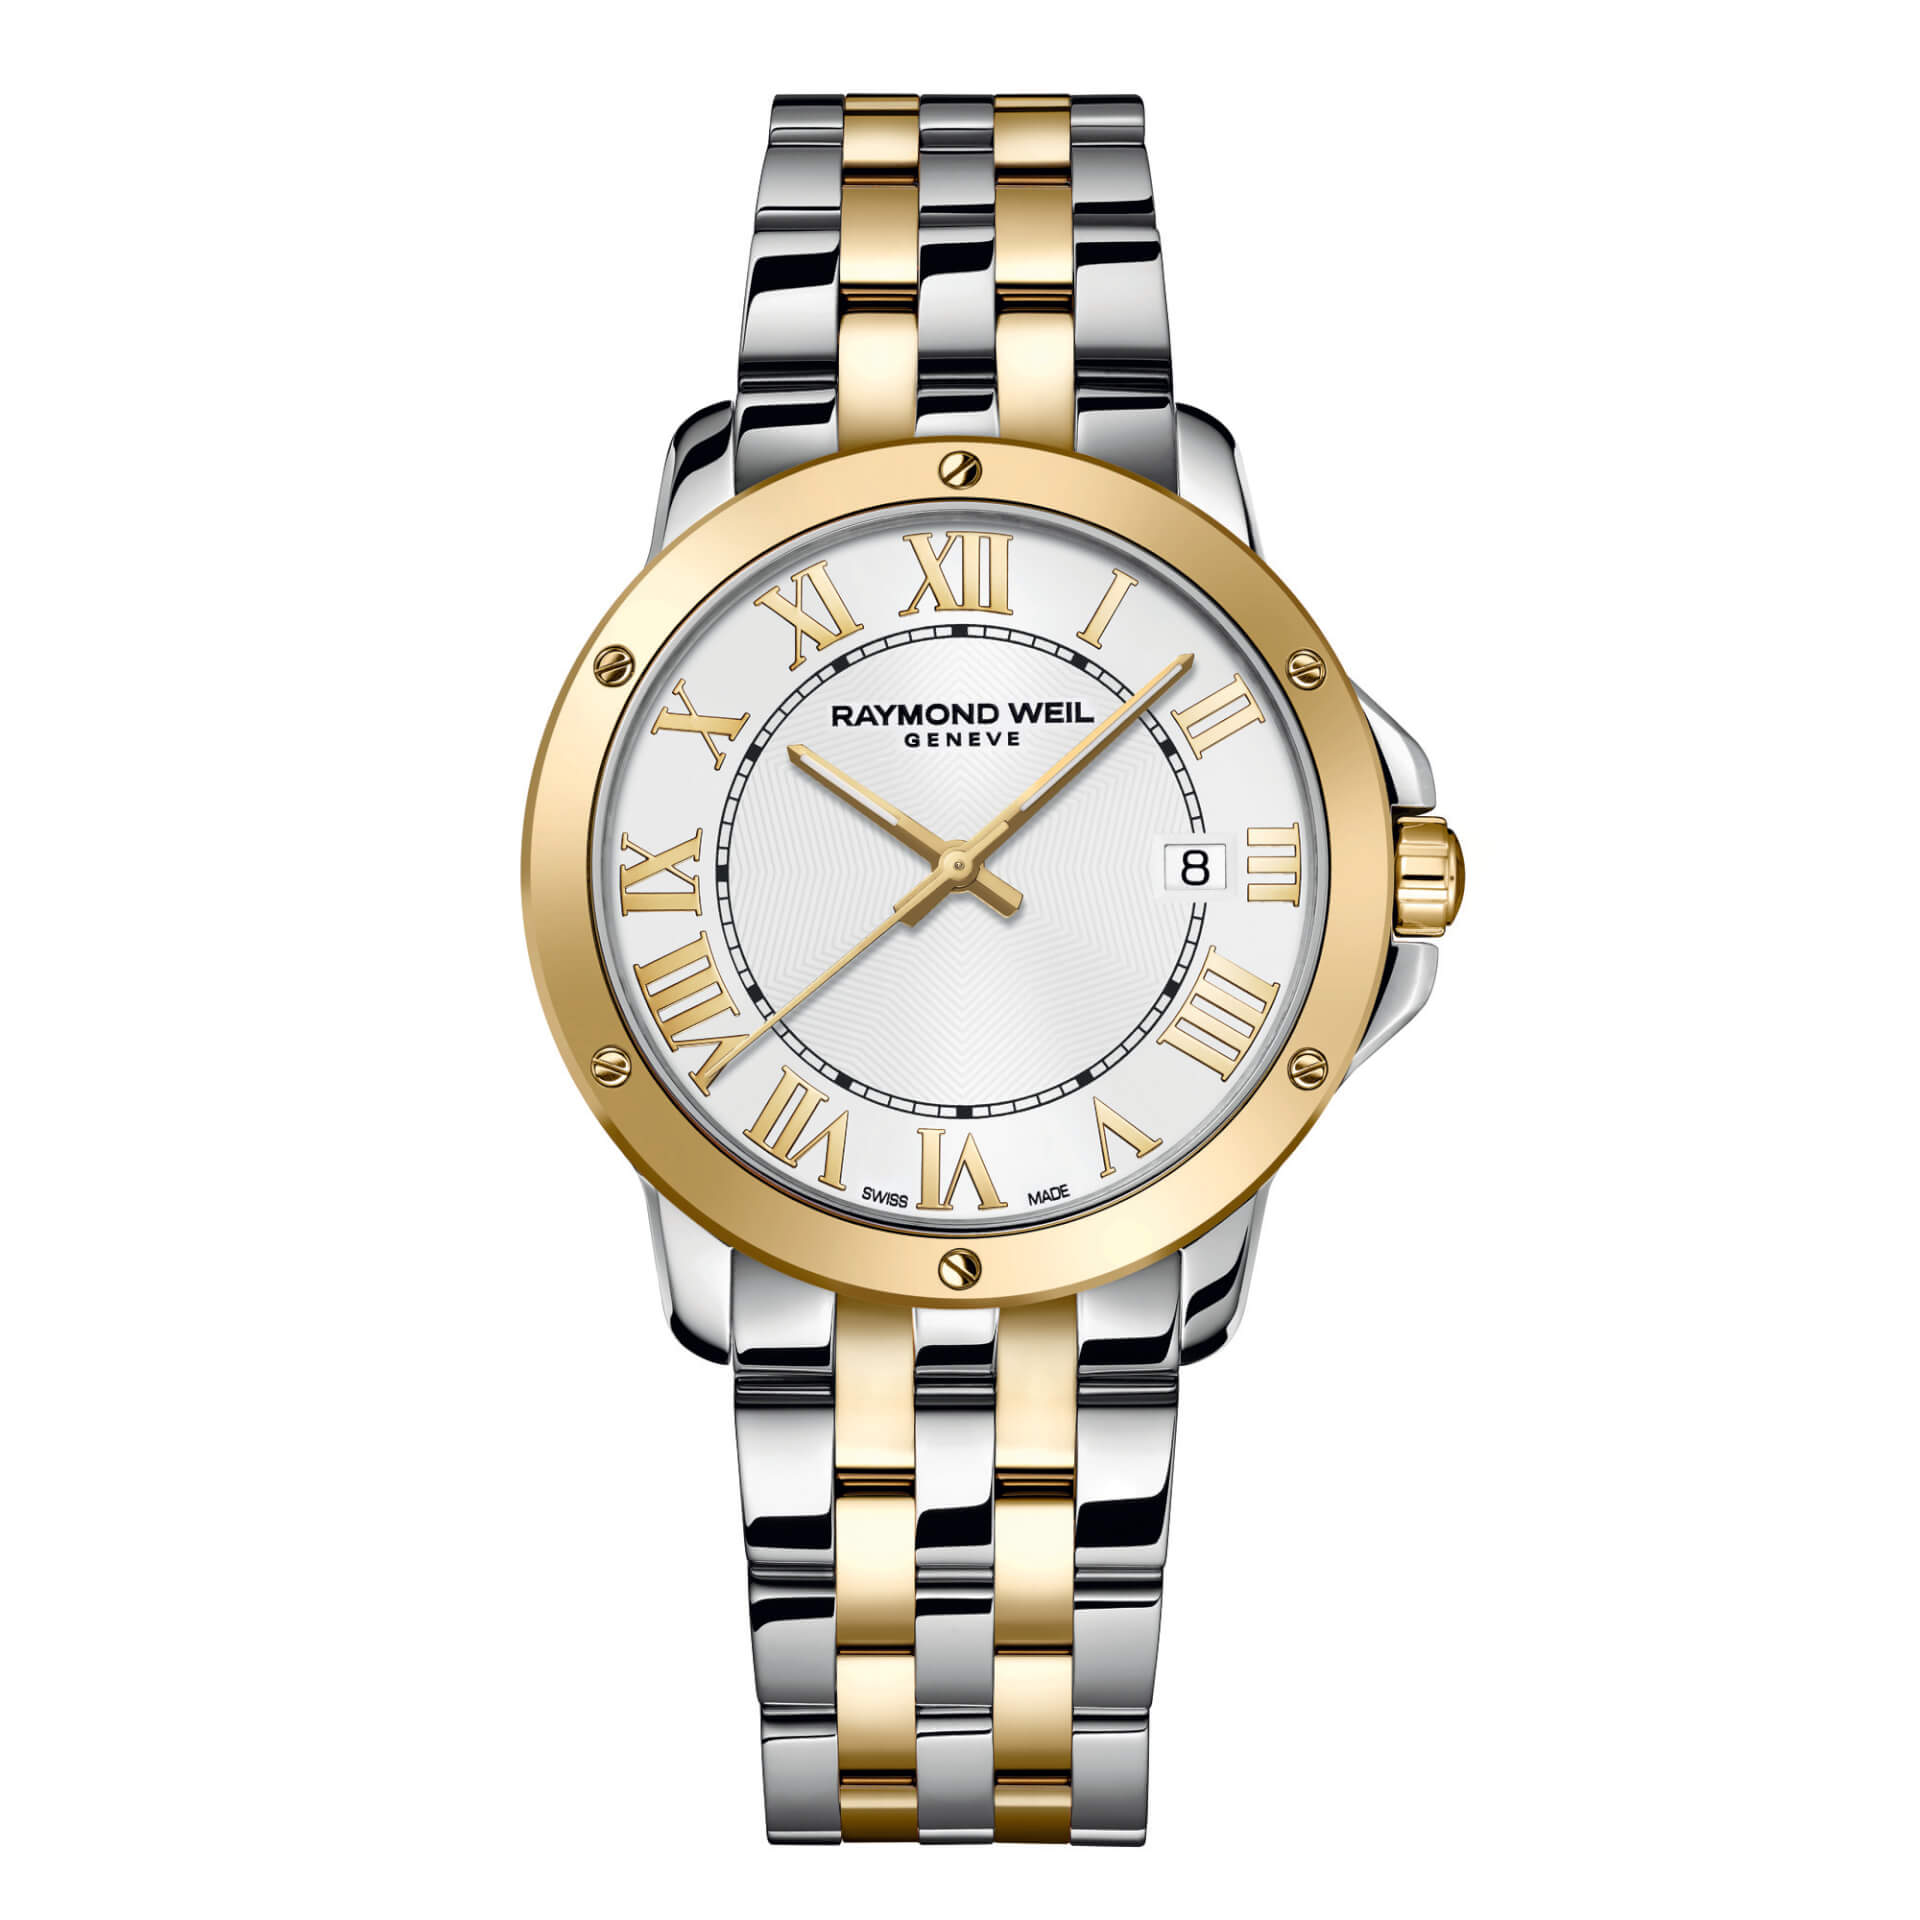 Raymond Weil Watches Collection @brownjewelers